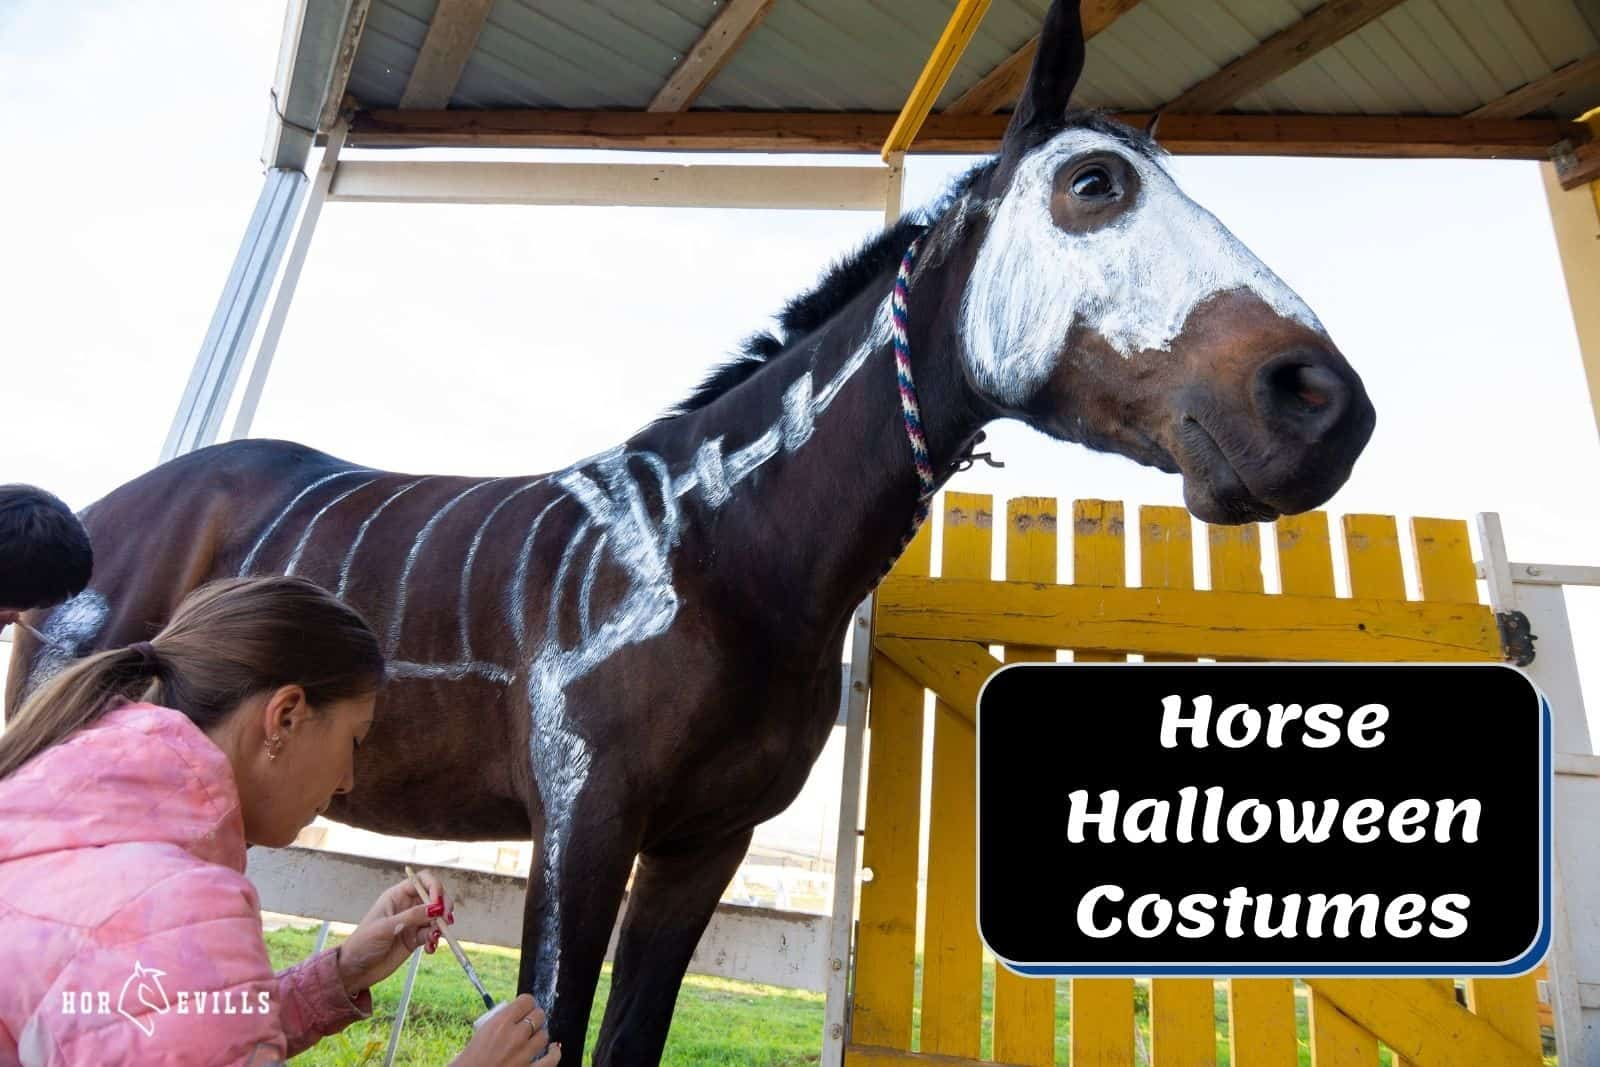 lady painting her horse's body for his Horse Halloween costumes